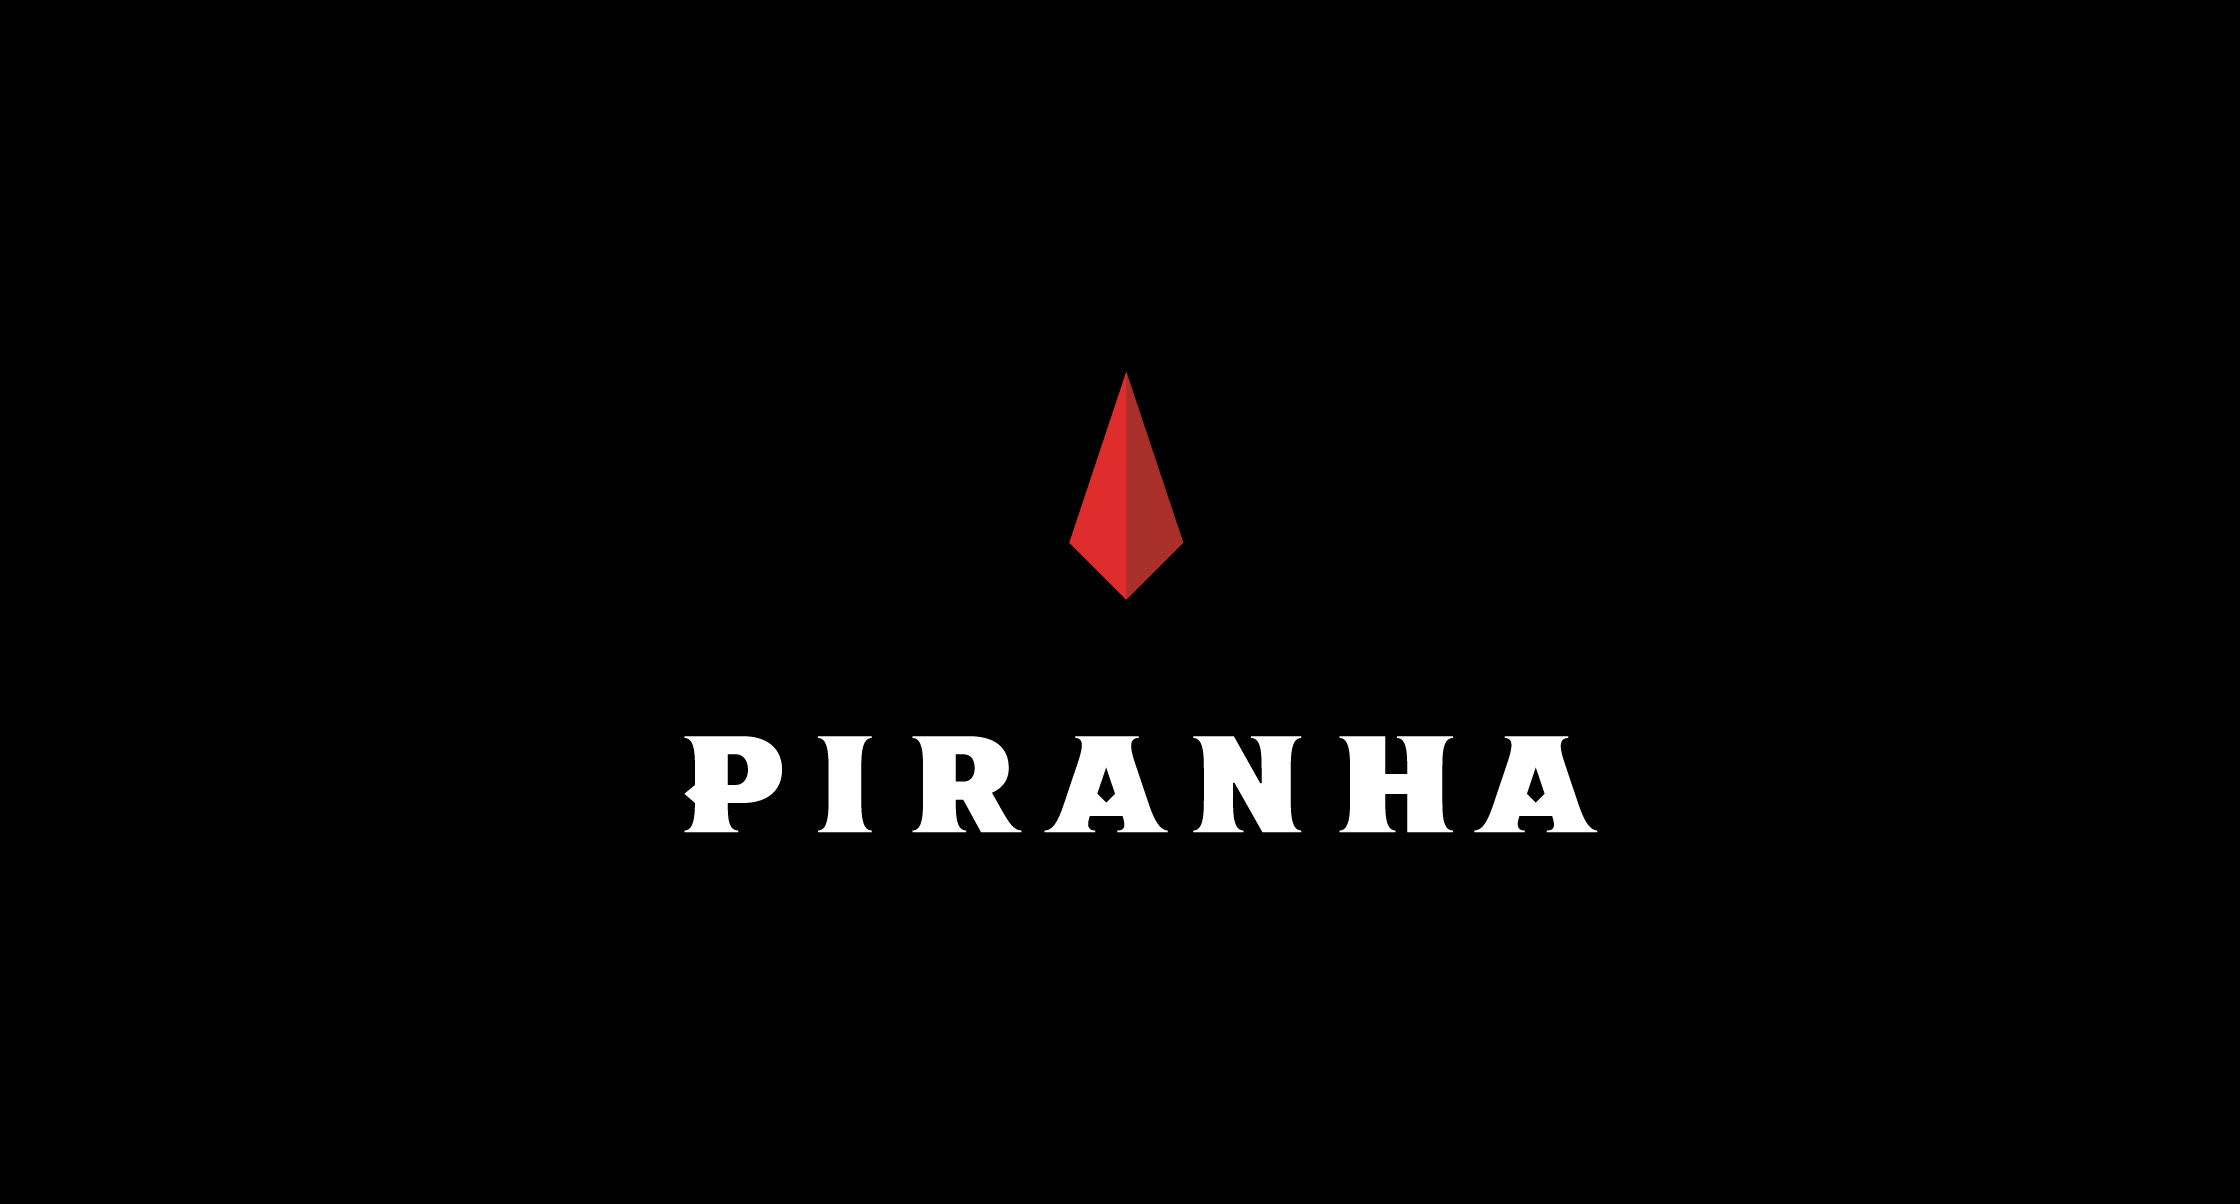 New logo design piranha hunger for more possibility 1 - Possibility™ - Design a healthier and more sustainable future. -